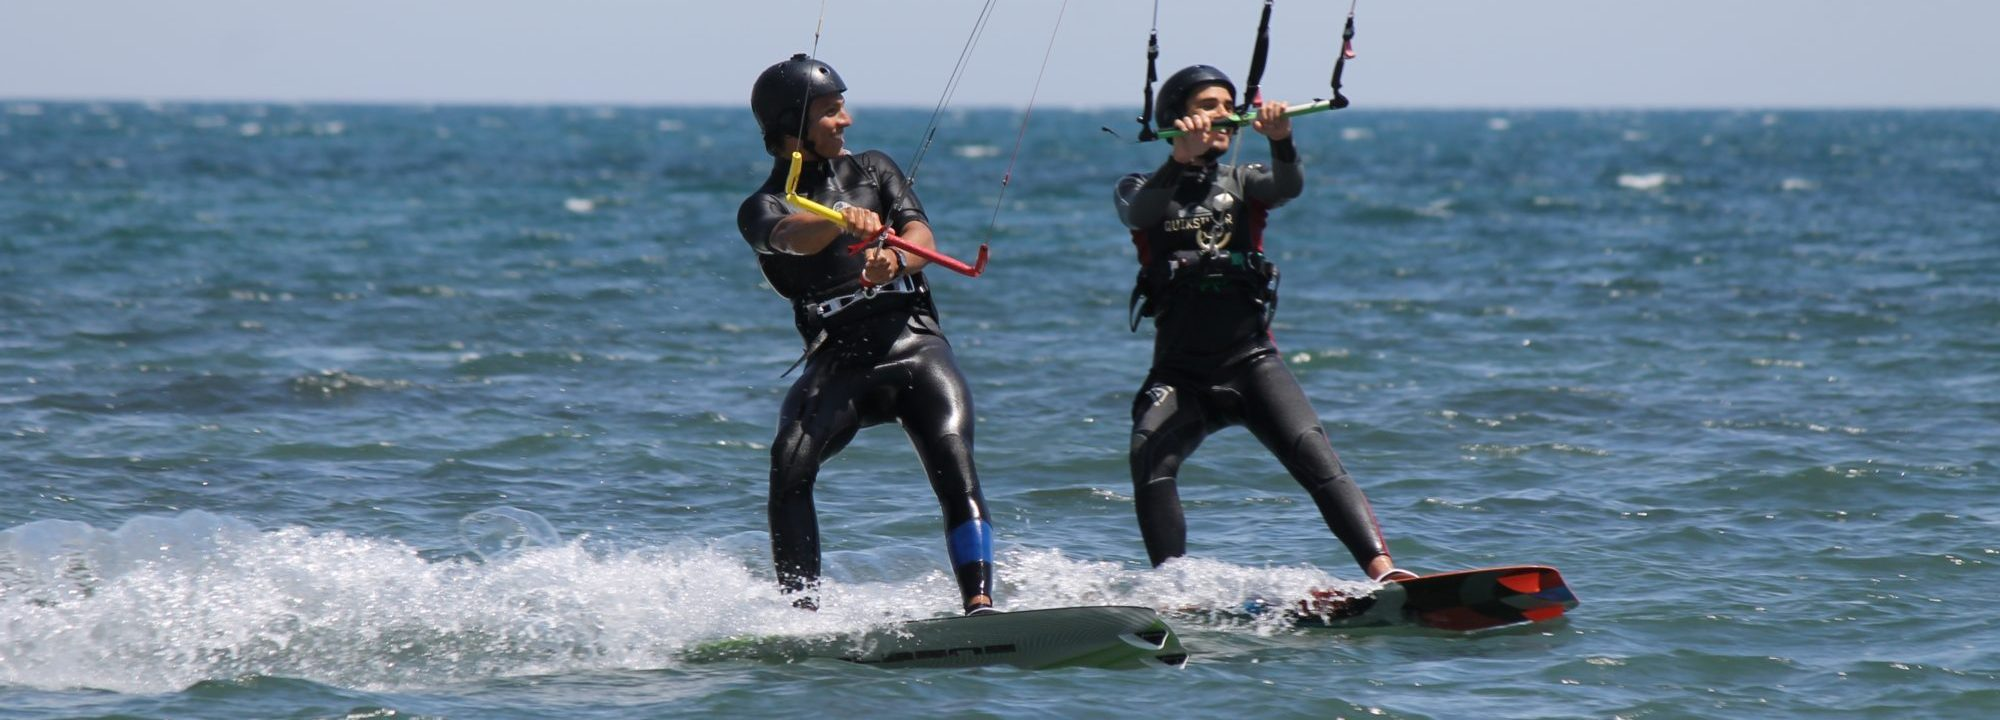 Best Place to Learn to Kite - Review of Kiteboarding ...